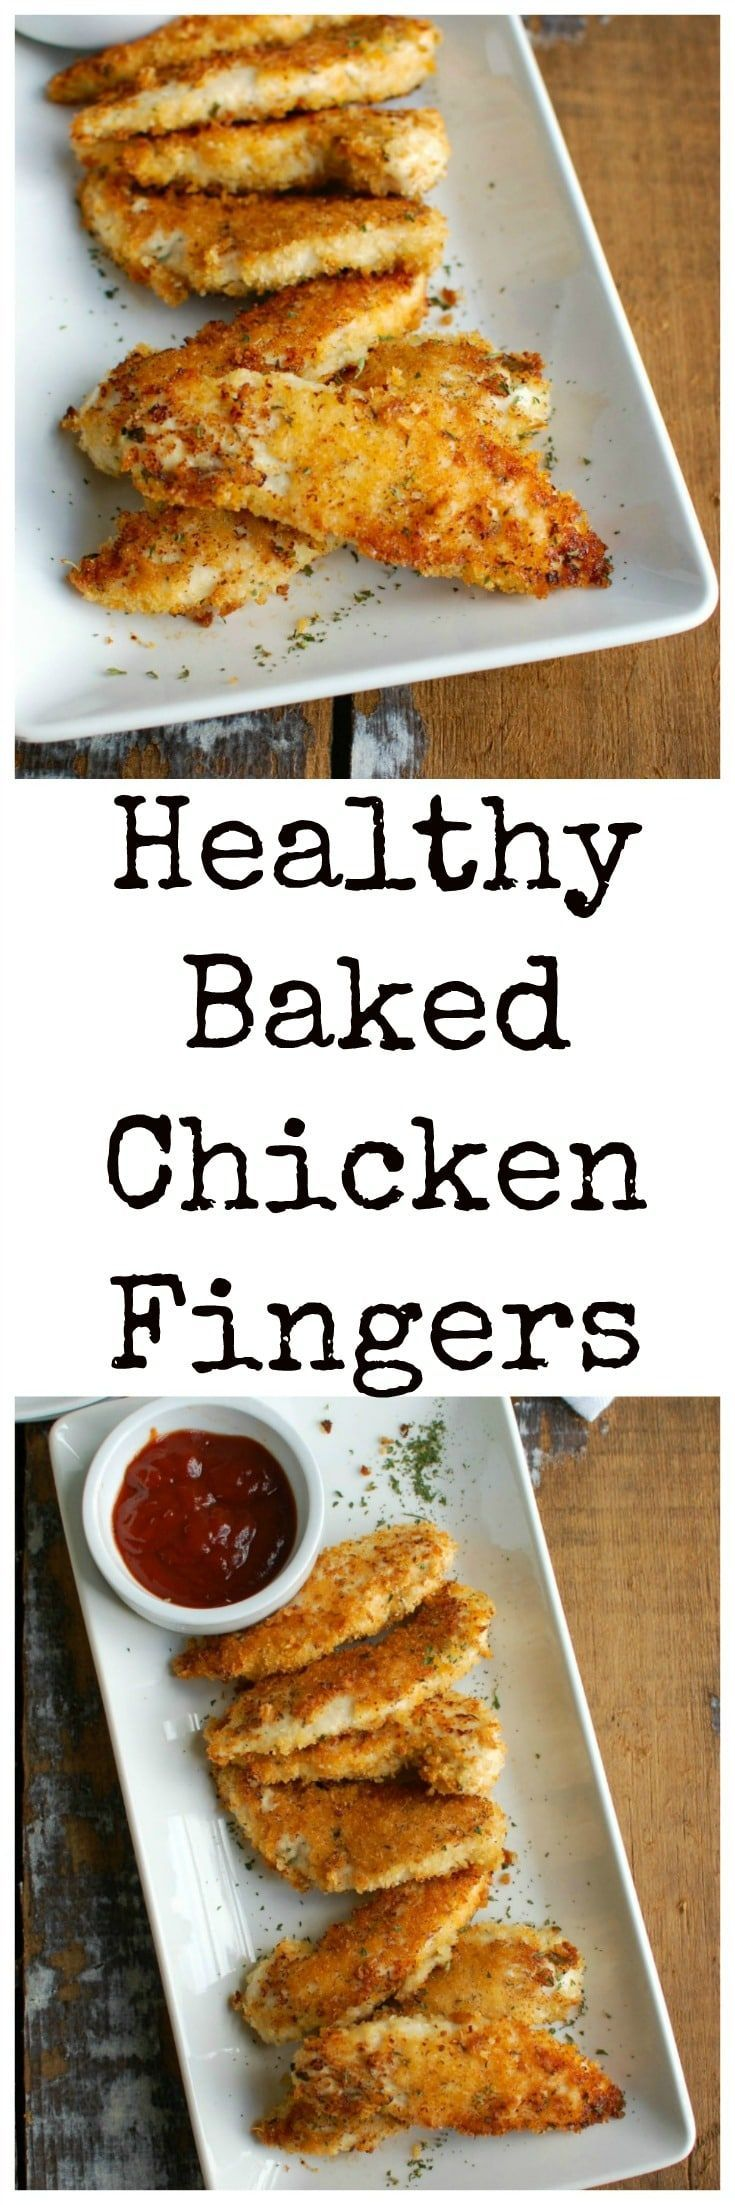 Healthy Baked Chicken Fingers Are Oven Baked To Create A